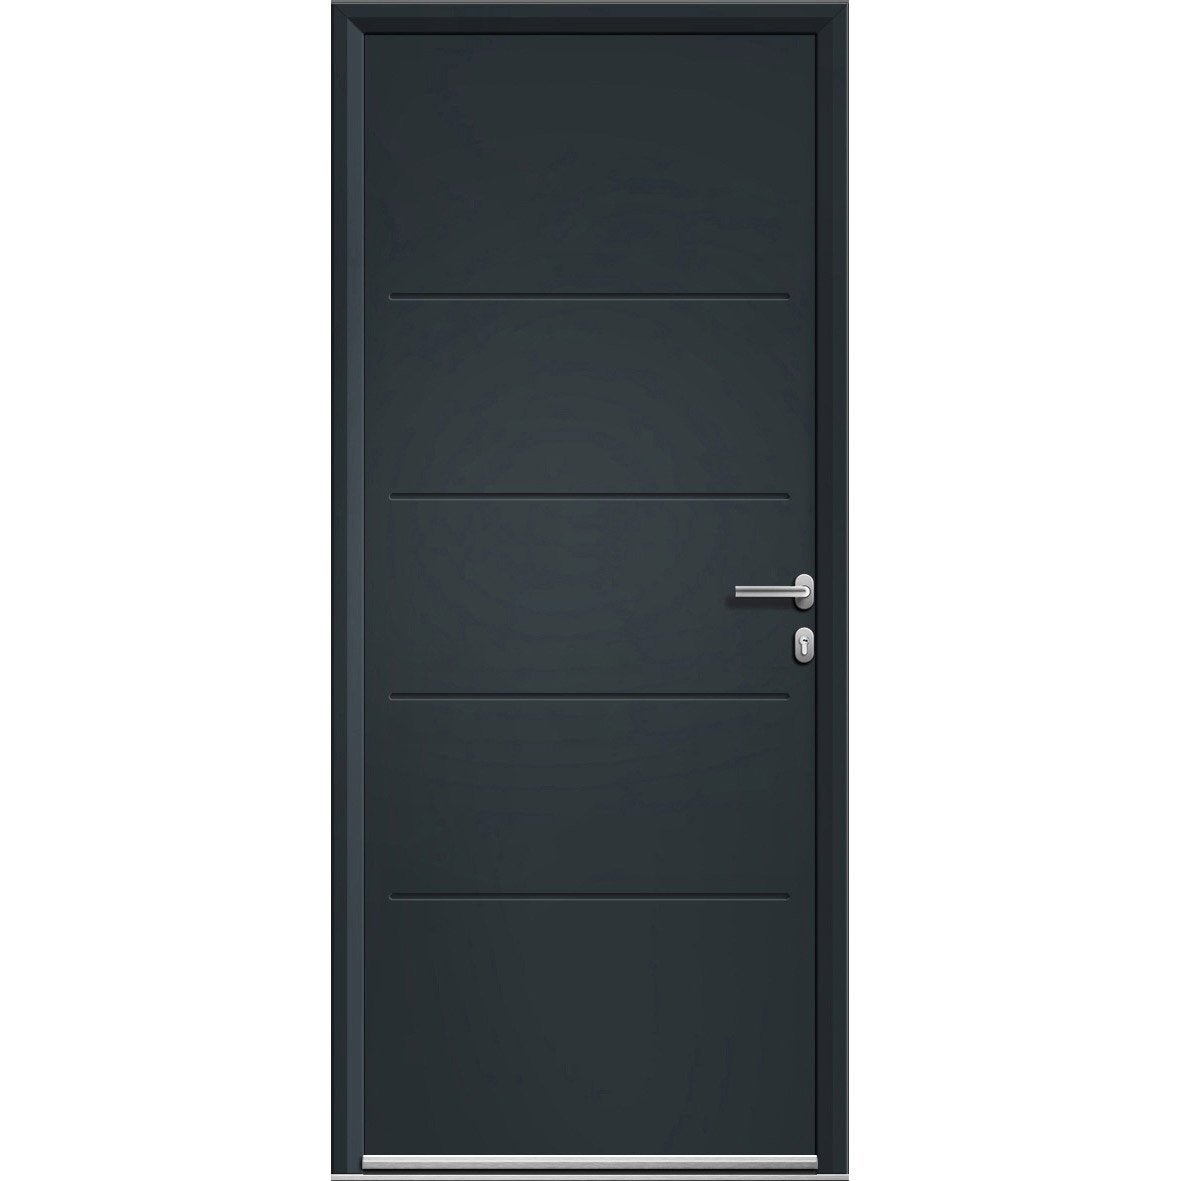 porte d 39 entr e aluminium lineal gris poussant gauche h. Black Bedroom Furniture Sets. Home Design Ideas